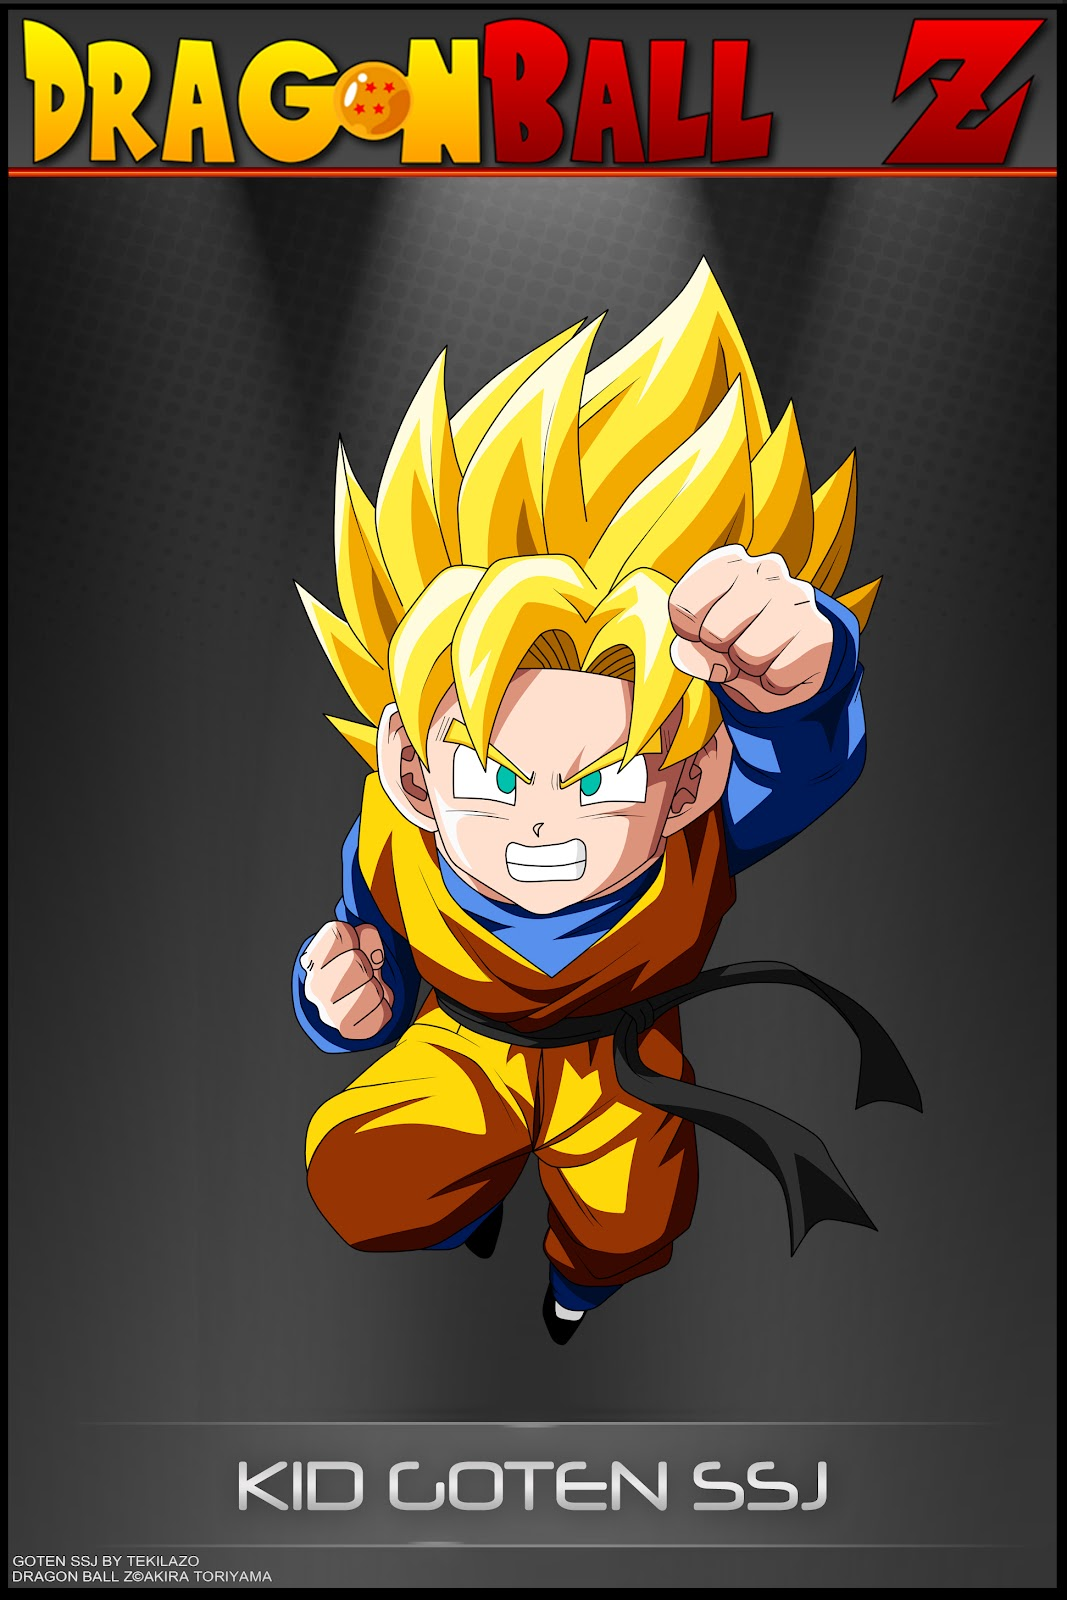 Dragon ball z wallpapers goten super saiyen - Photo dragon ball z ...